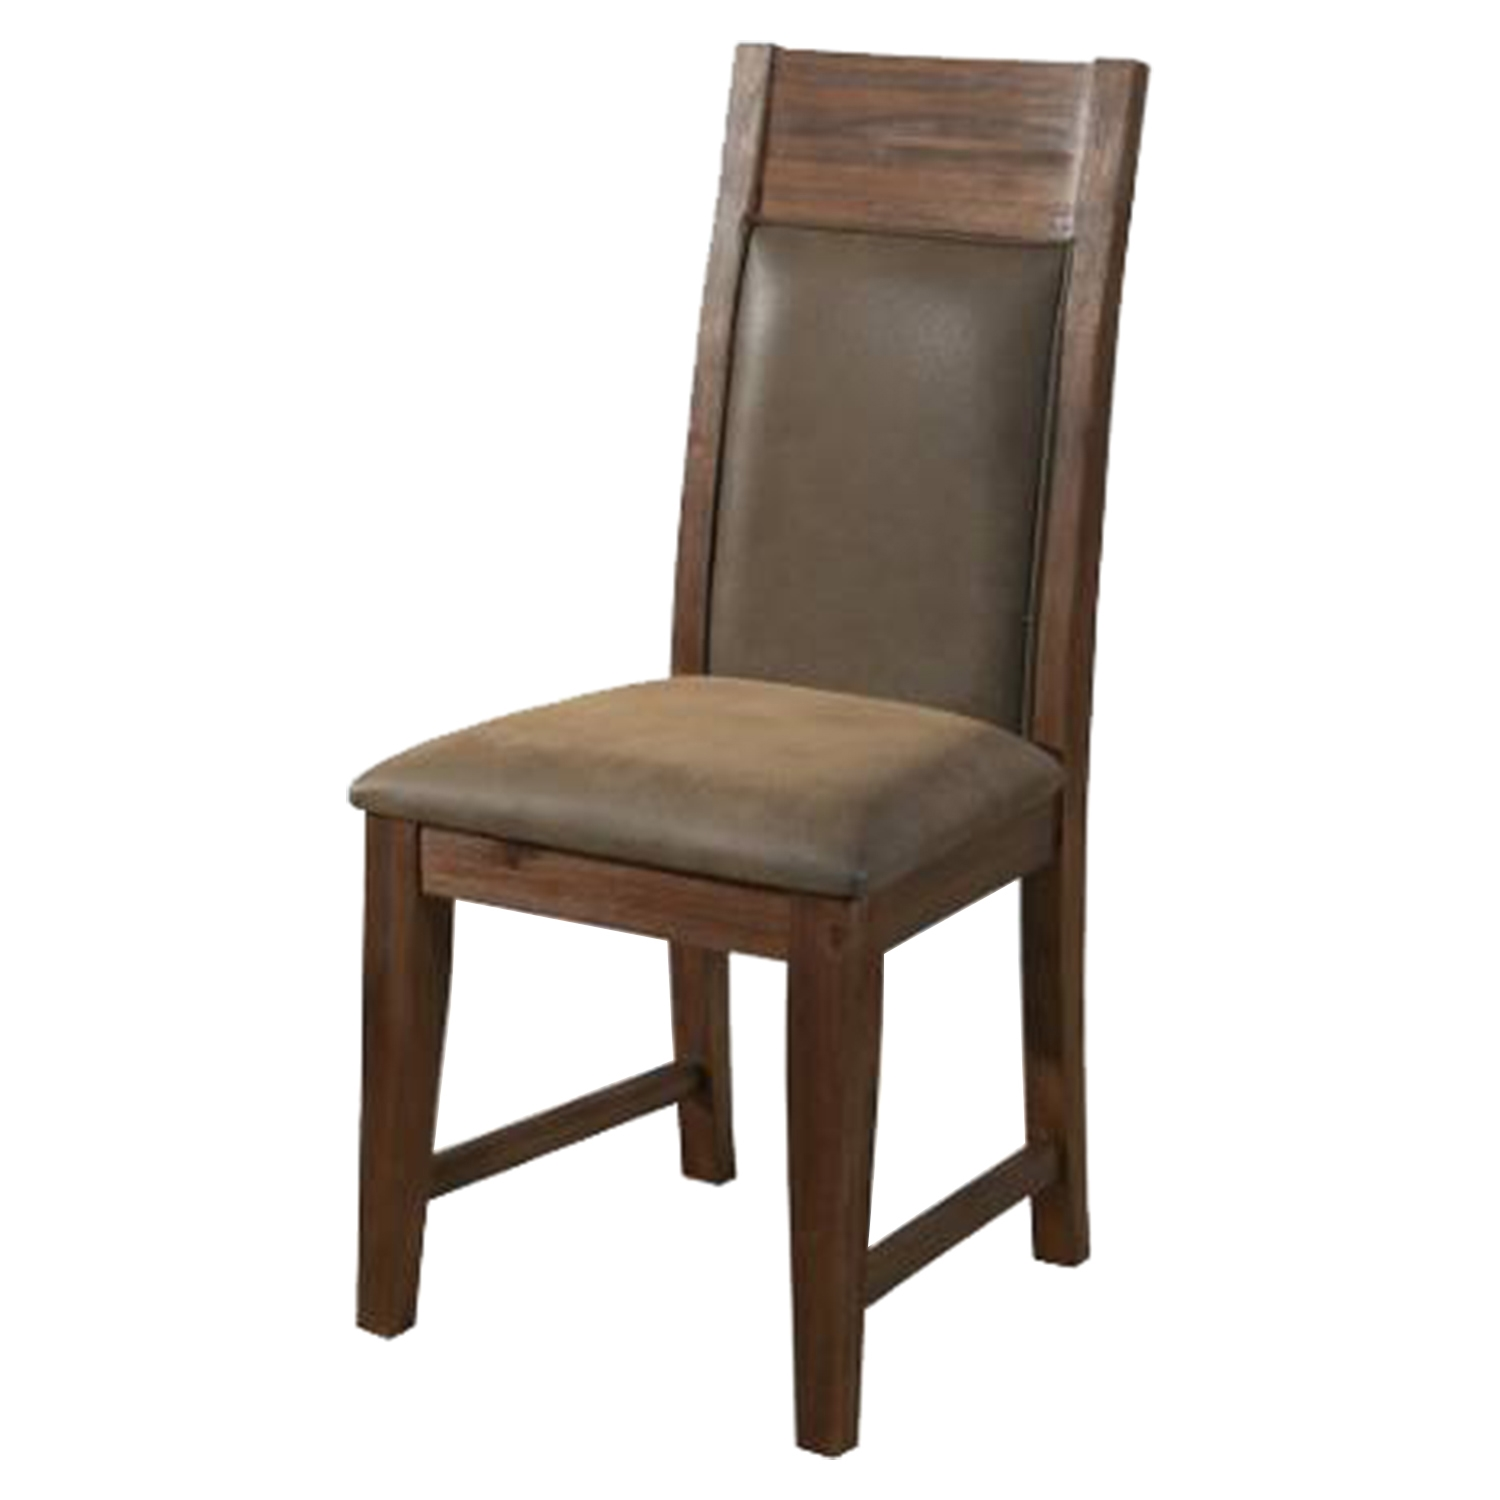 Pierre Side Chair - Antique Cappuccino - ALP-8104-02